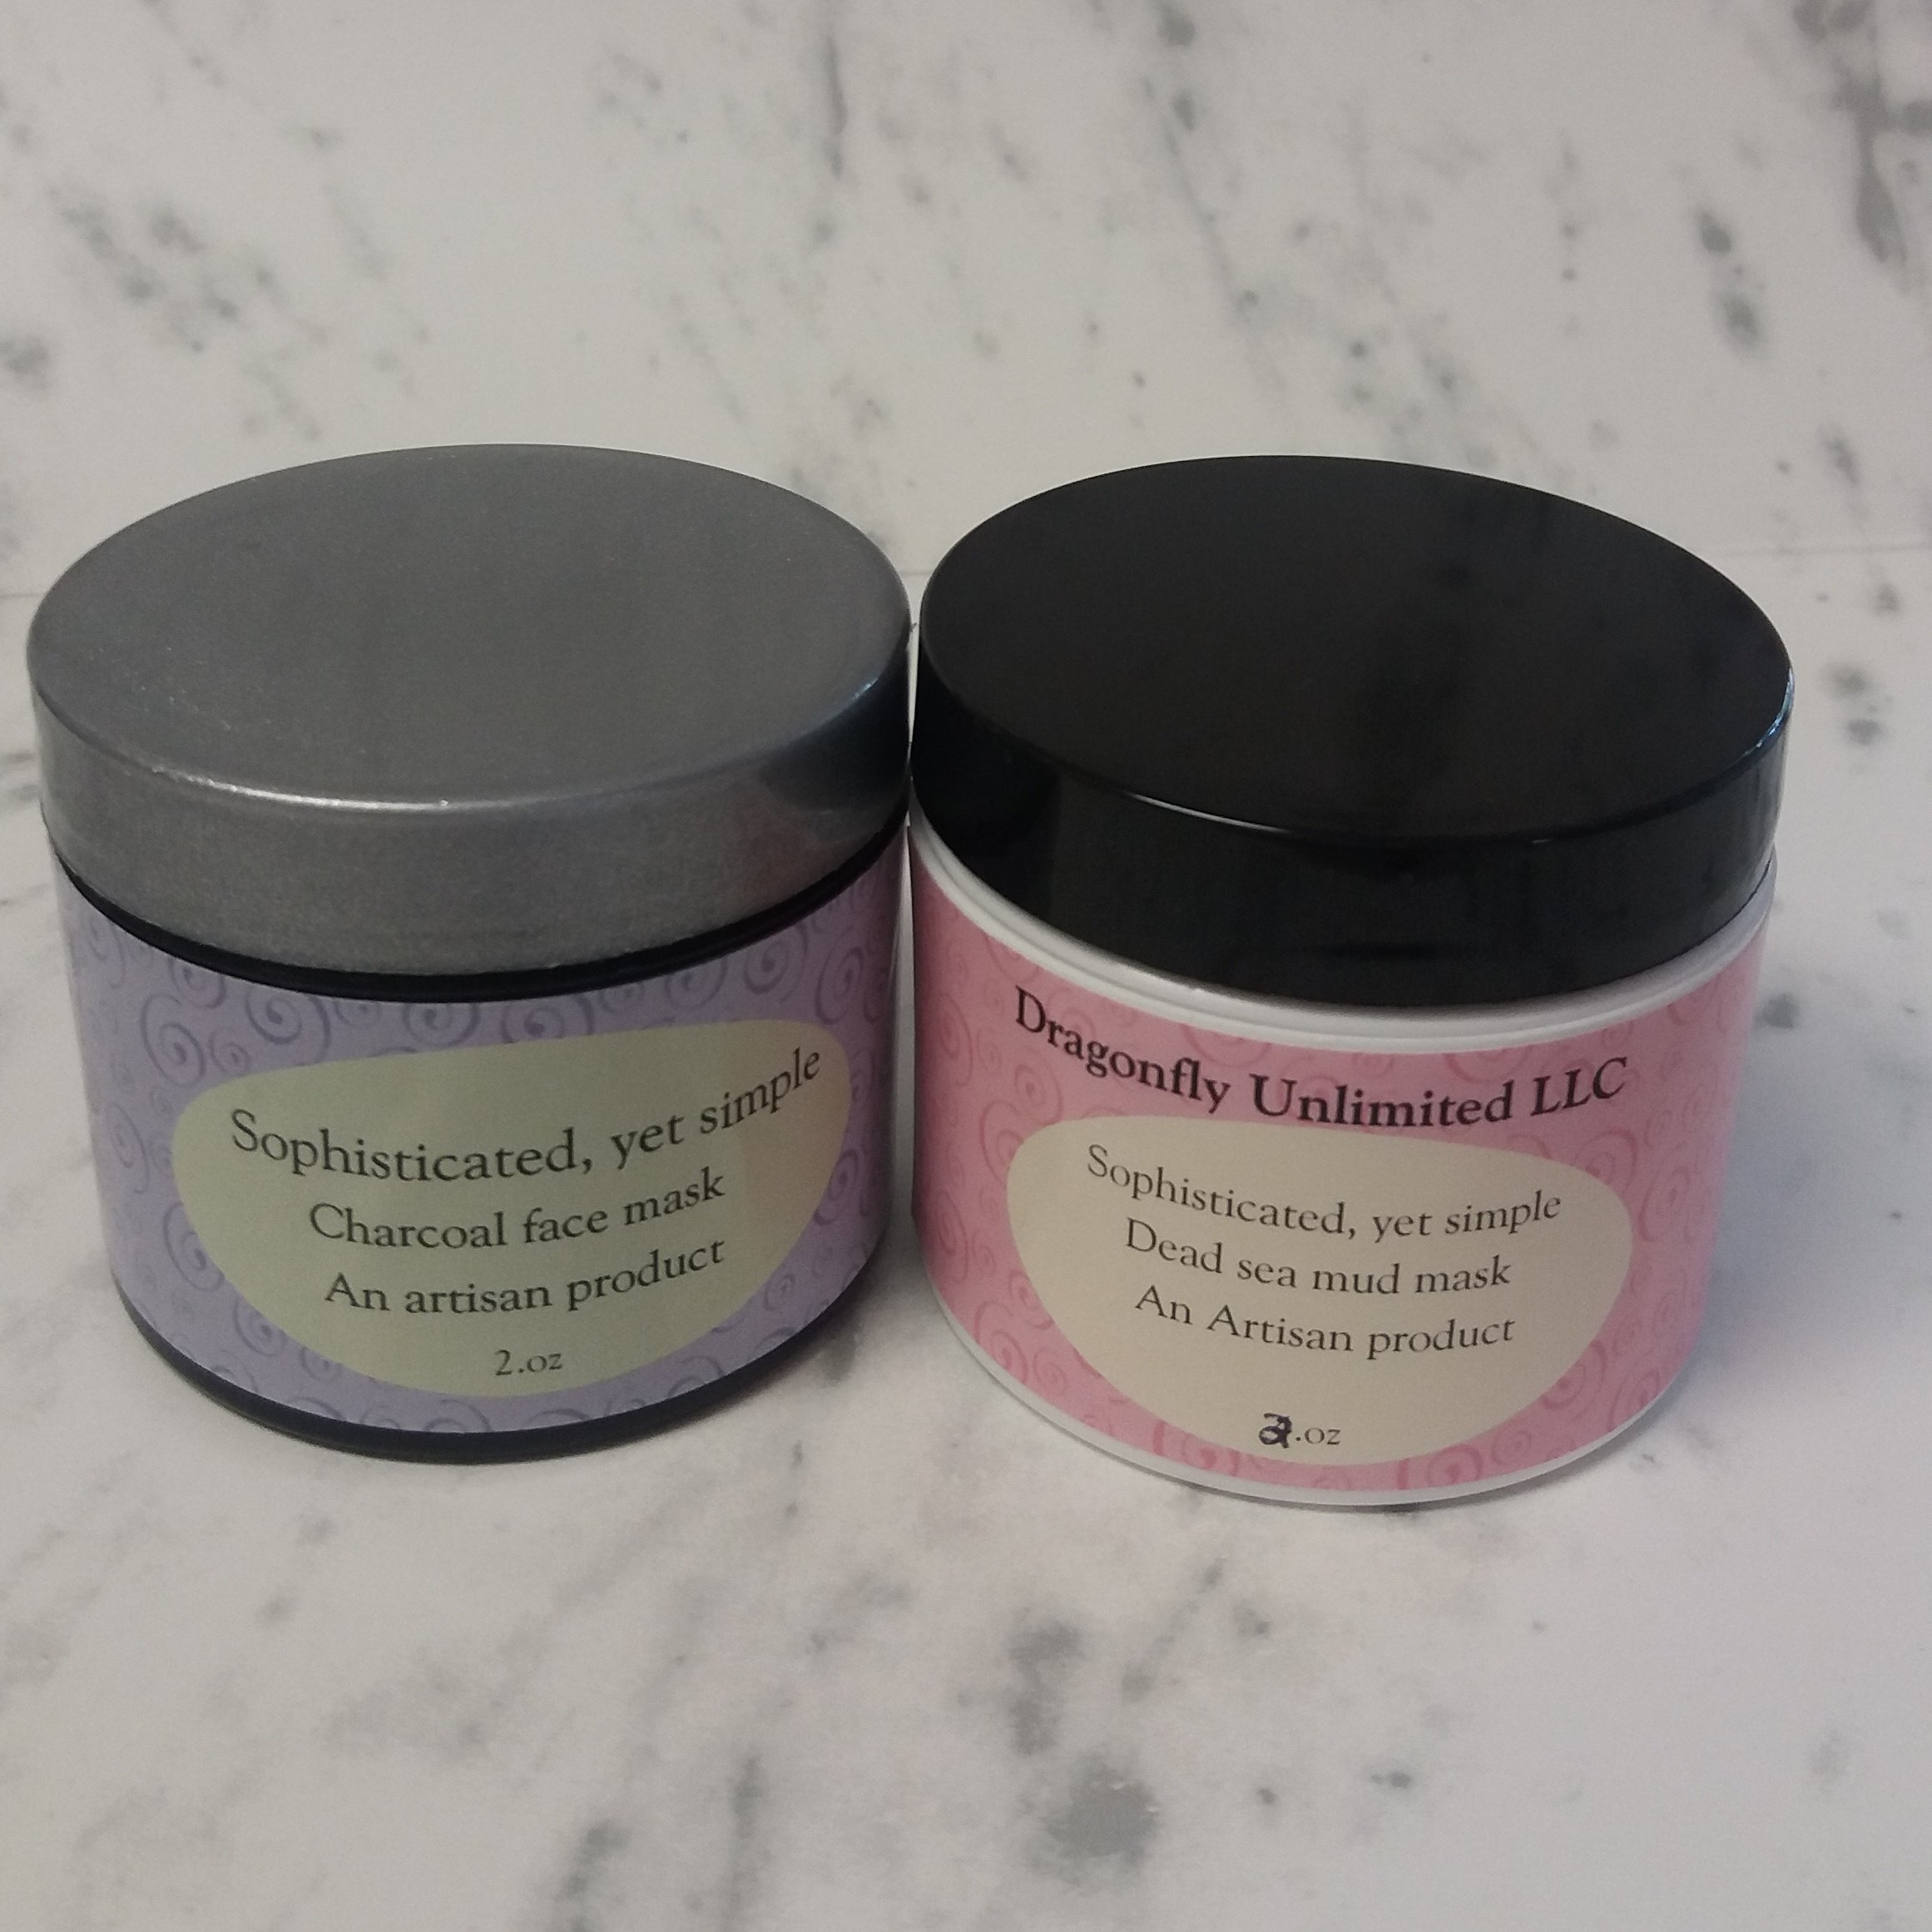 Dead sea mud mask, charcoal face mask, mud mask, charcoal mask, face treatment, made with real Dead sea mud from Israel